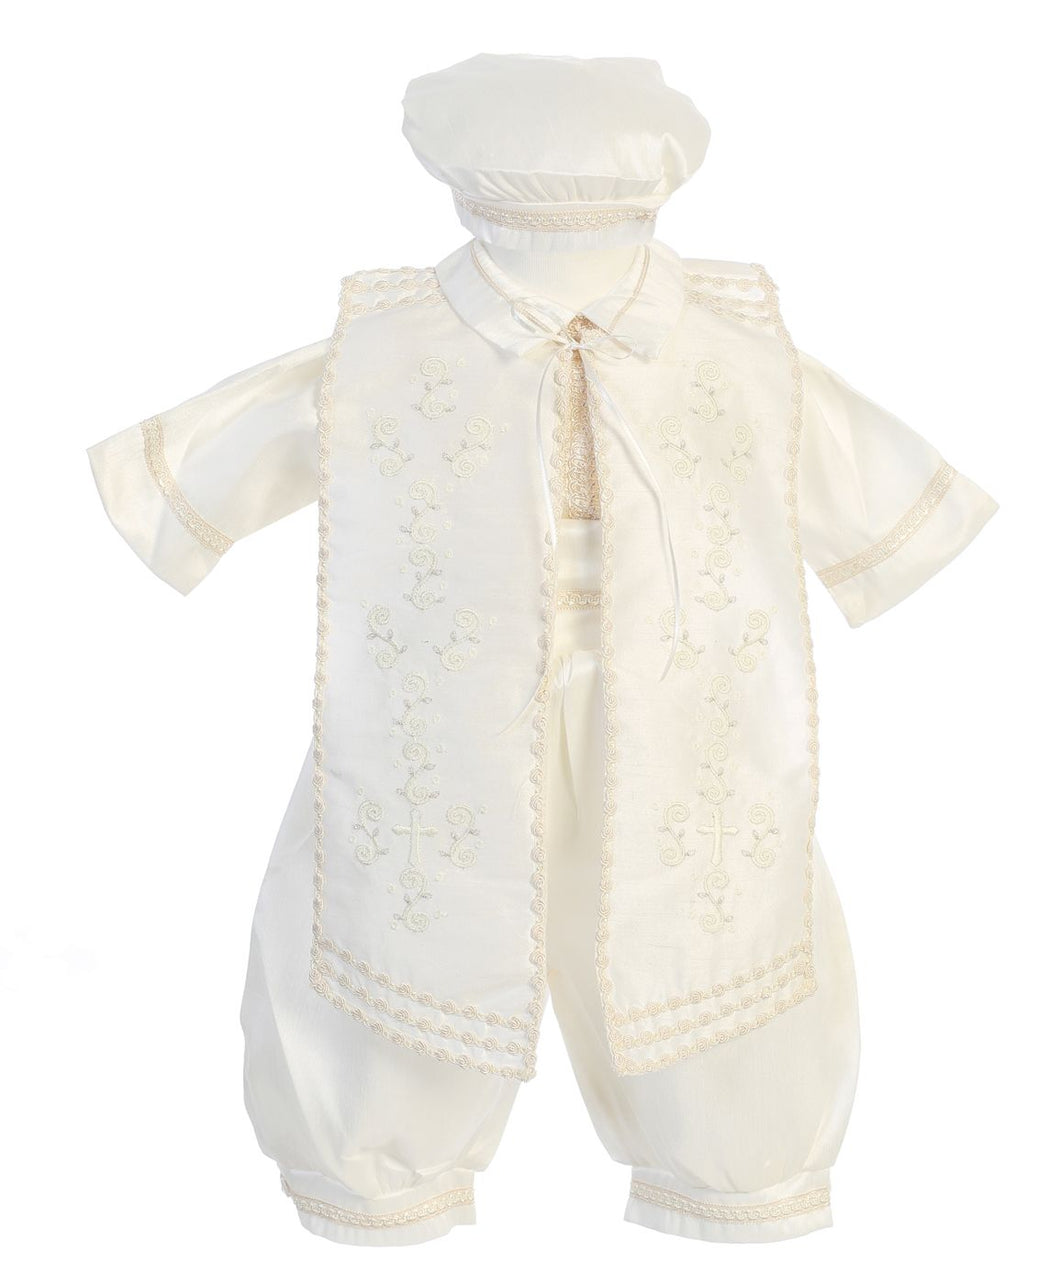 Baptism Boys Outfit - BB59